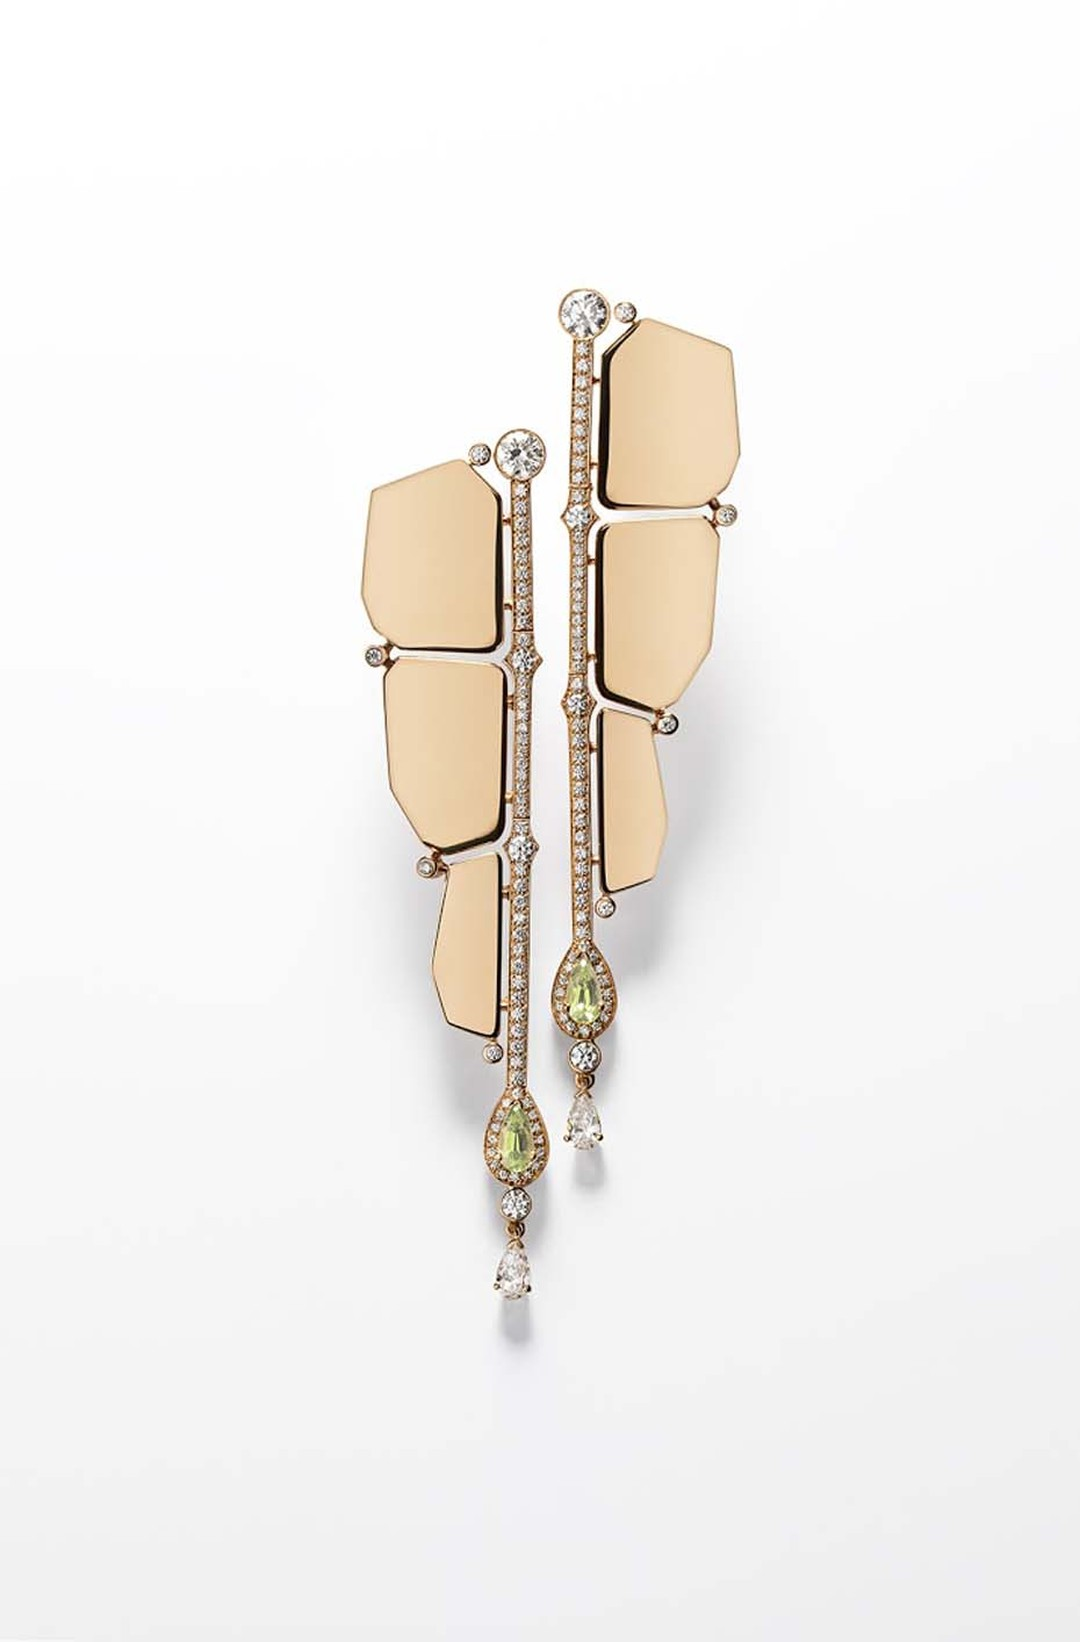 Hermès Niloticus Boutons d'Oreilles rose gold earrings featuring pear-shaped peridots and brilliant-cut diamonds